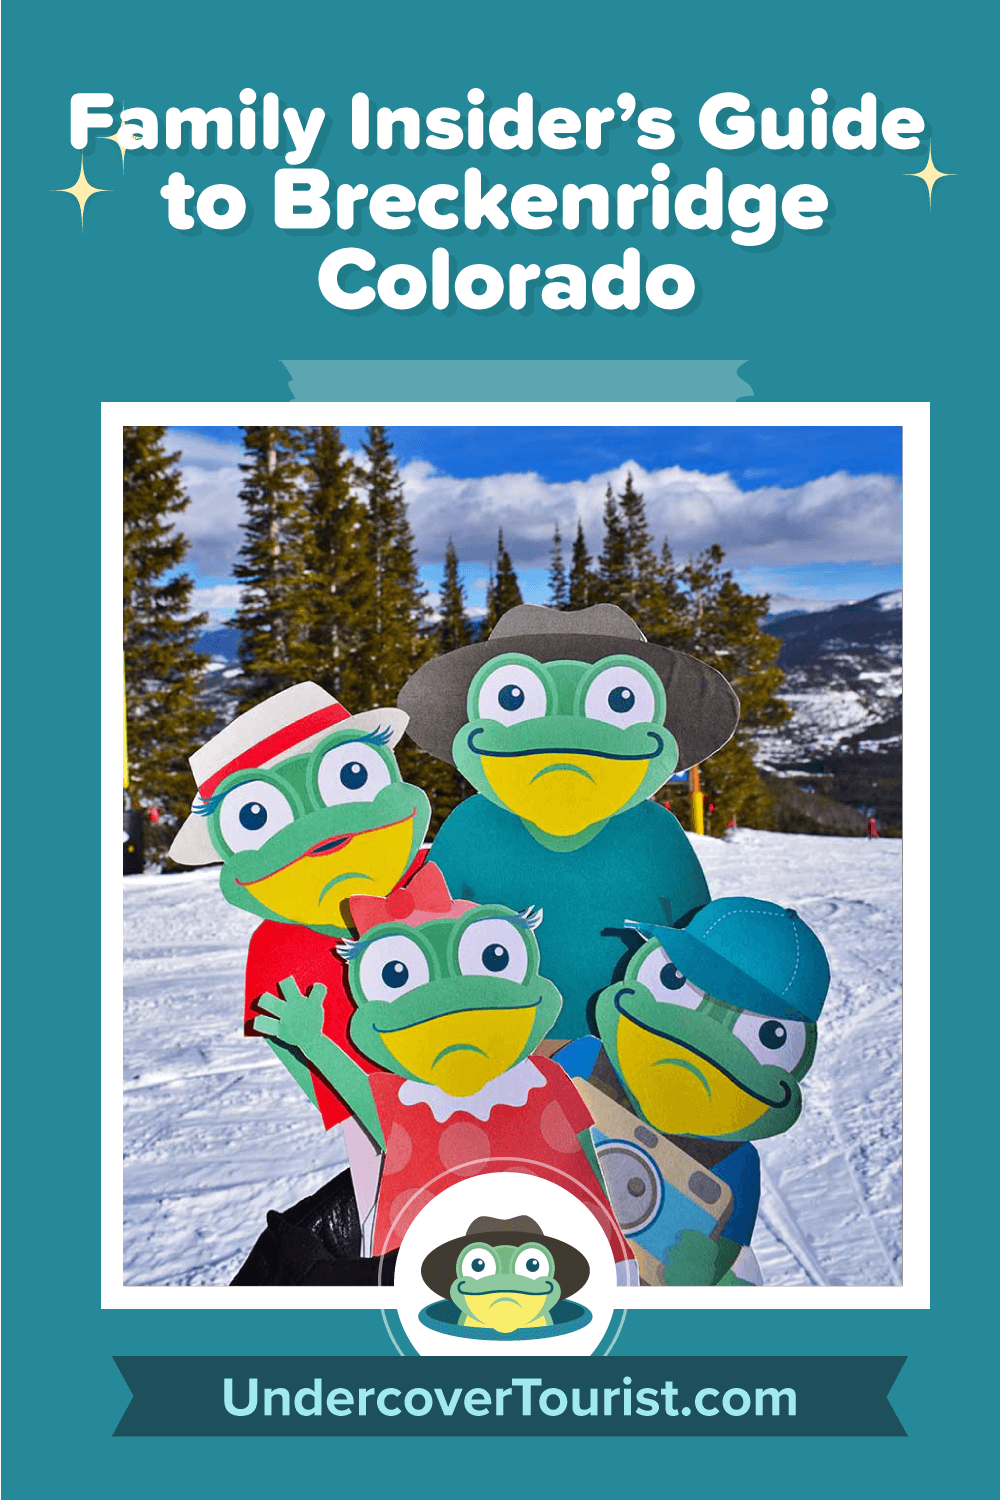 Family Insider's Guide to Breckenridge, Colorado